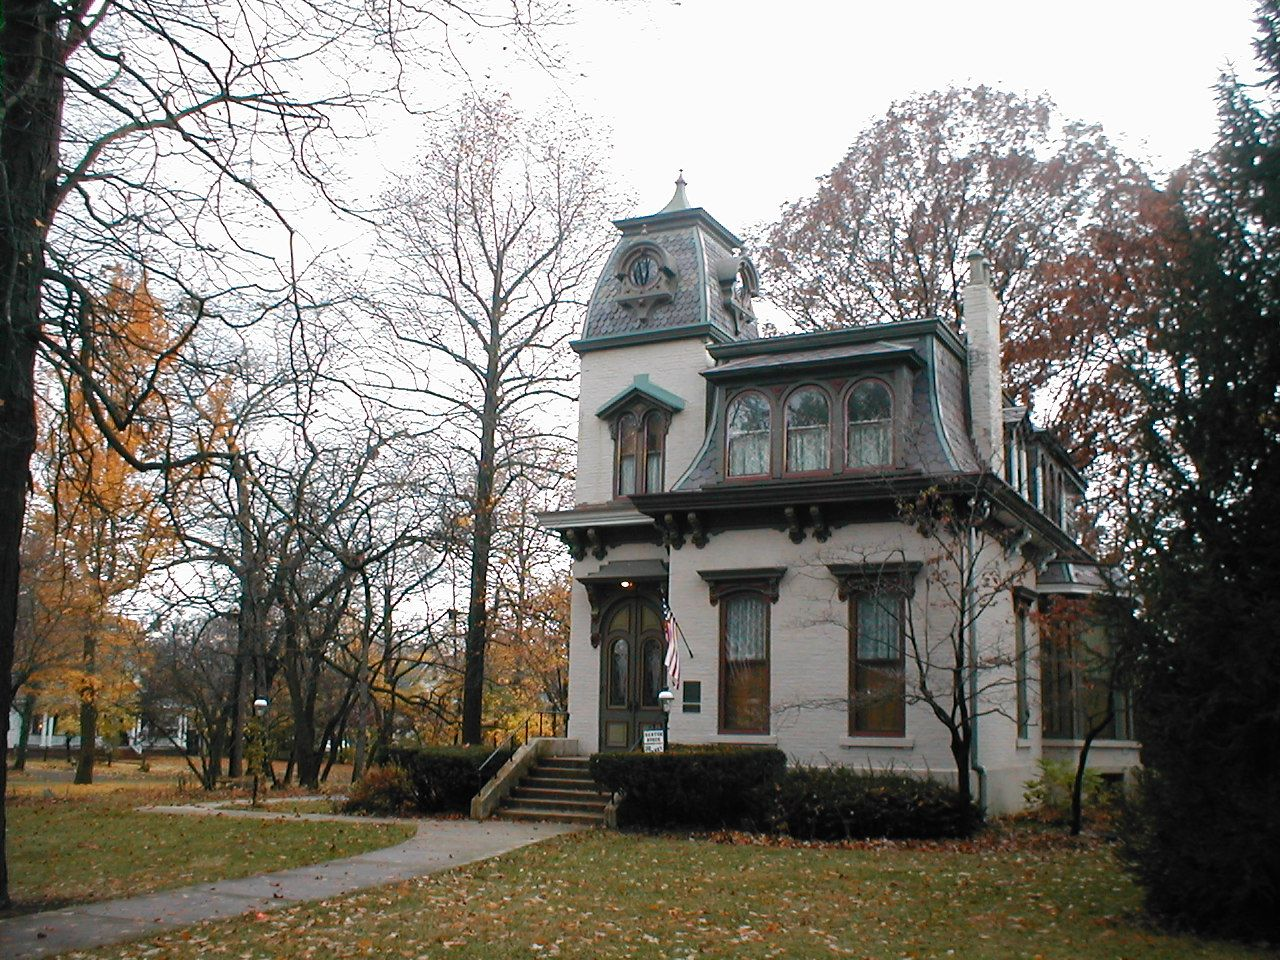 Victorian homes for sale in mississippi - Explore Victorian Homes Historic Homes And More